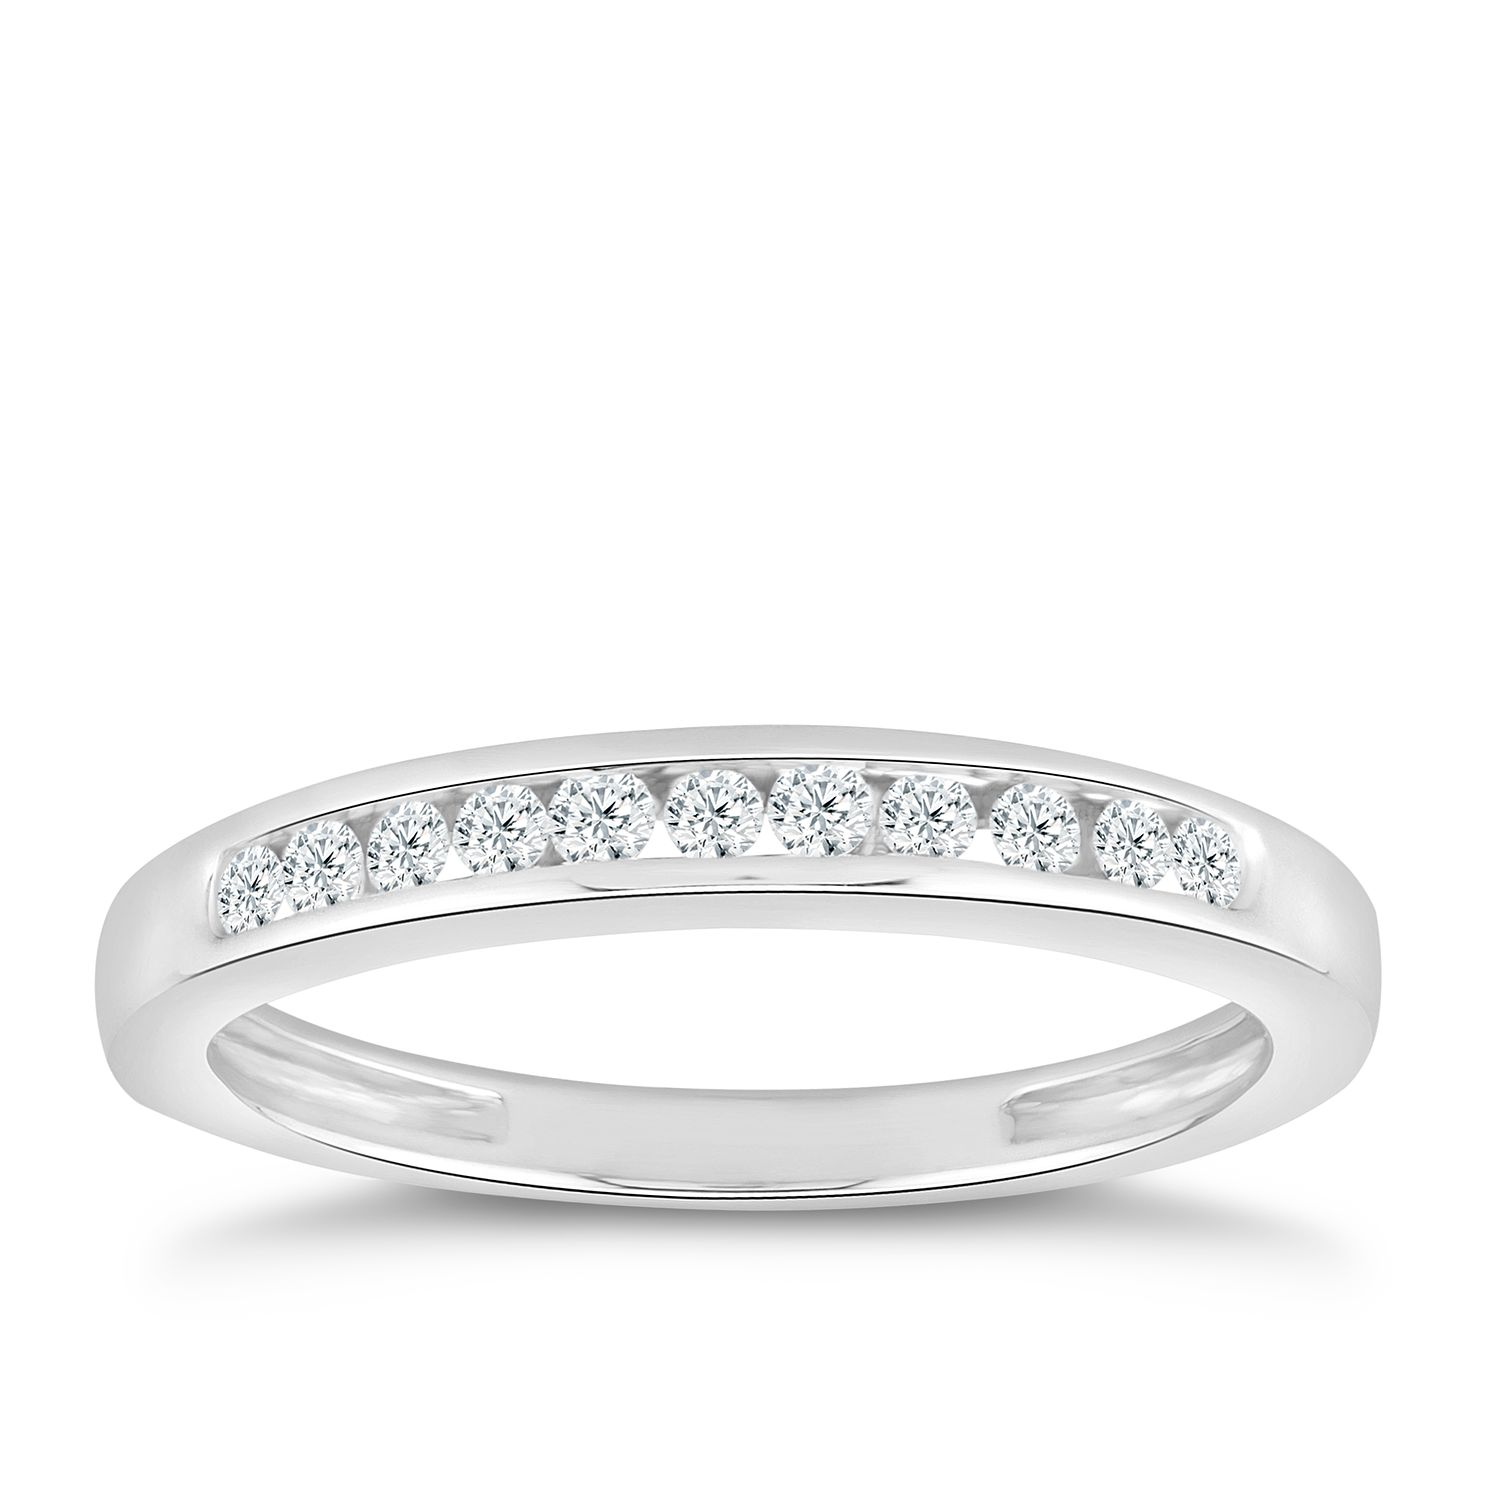 18ct White Gold 0.15ct Diamond Eternity Ring - Product number 5059763